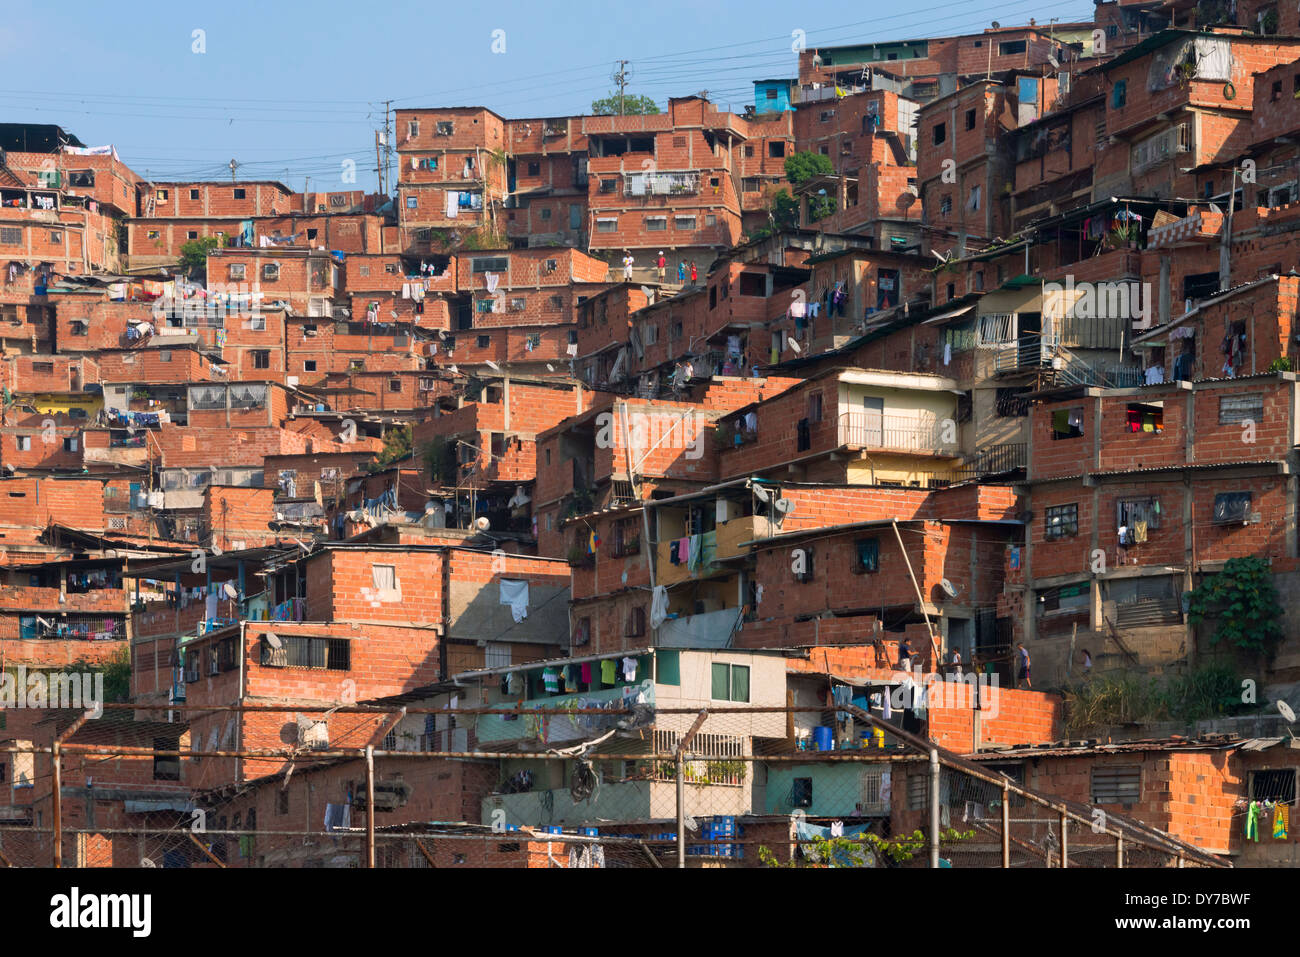 Barrios, slums of Caracas on the hillside, Caracas, Venezuela - Stock Image